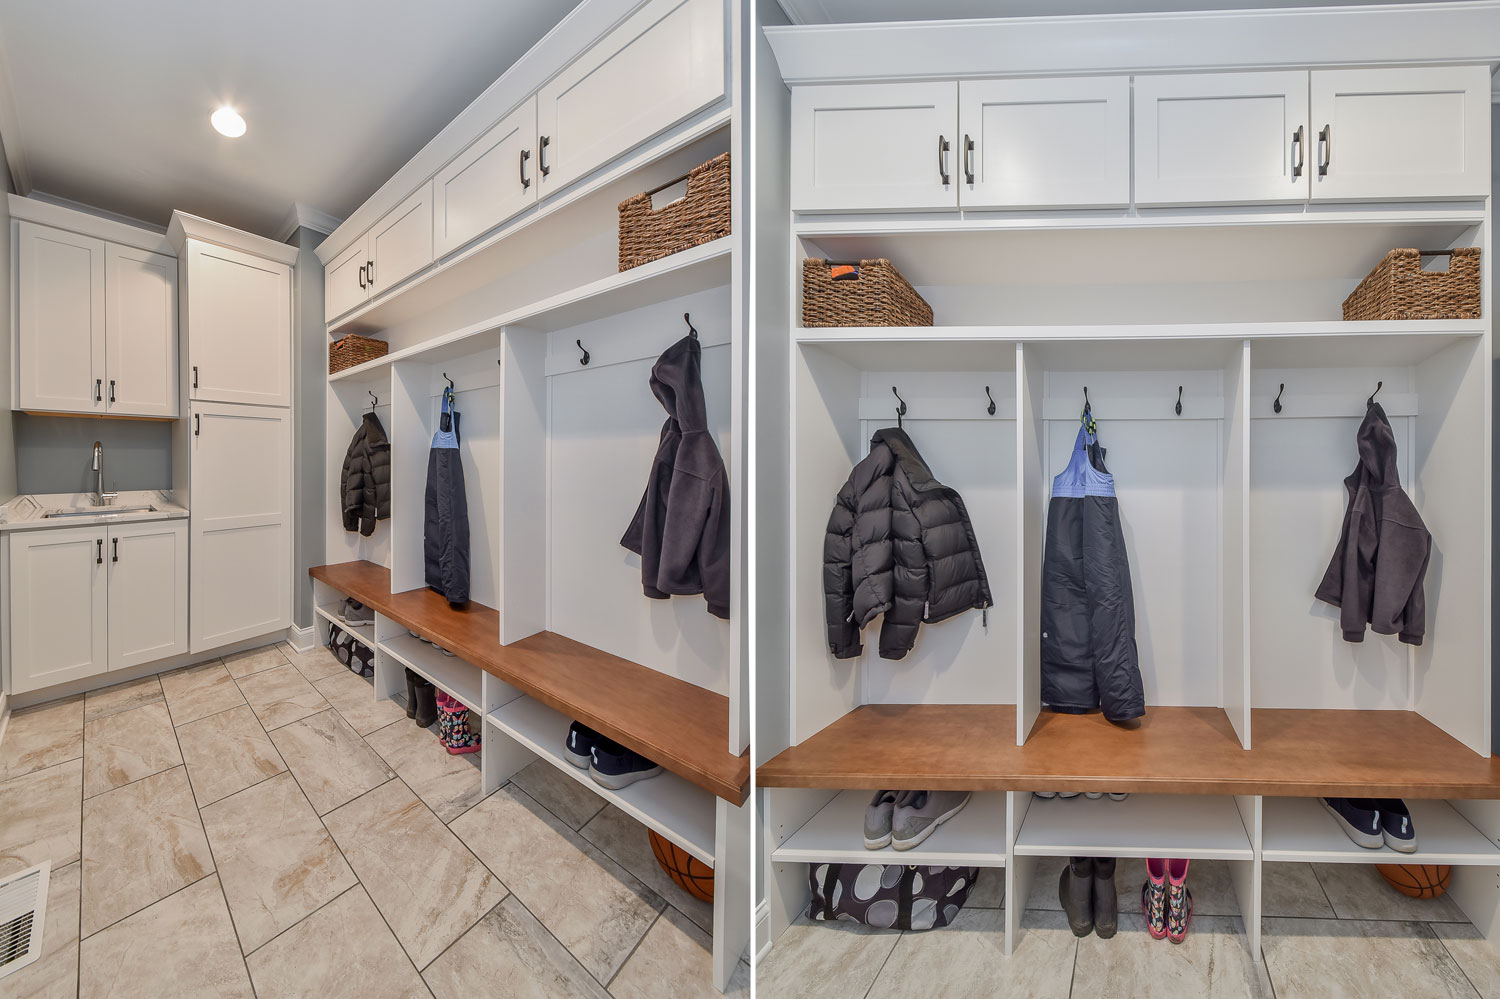 View Larger Image Naperville Mudroom Cubbies Laundry Room Attic Sebring Design Build